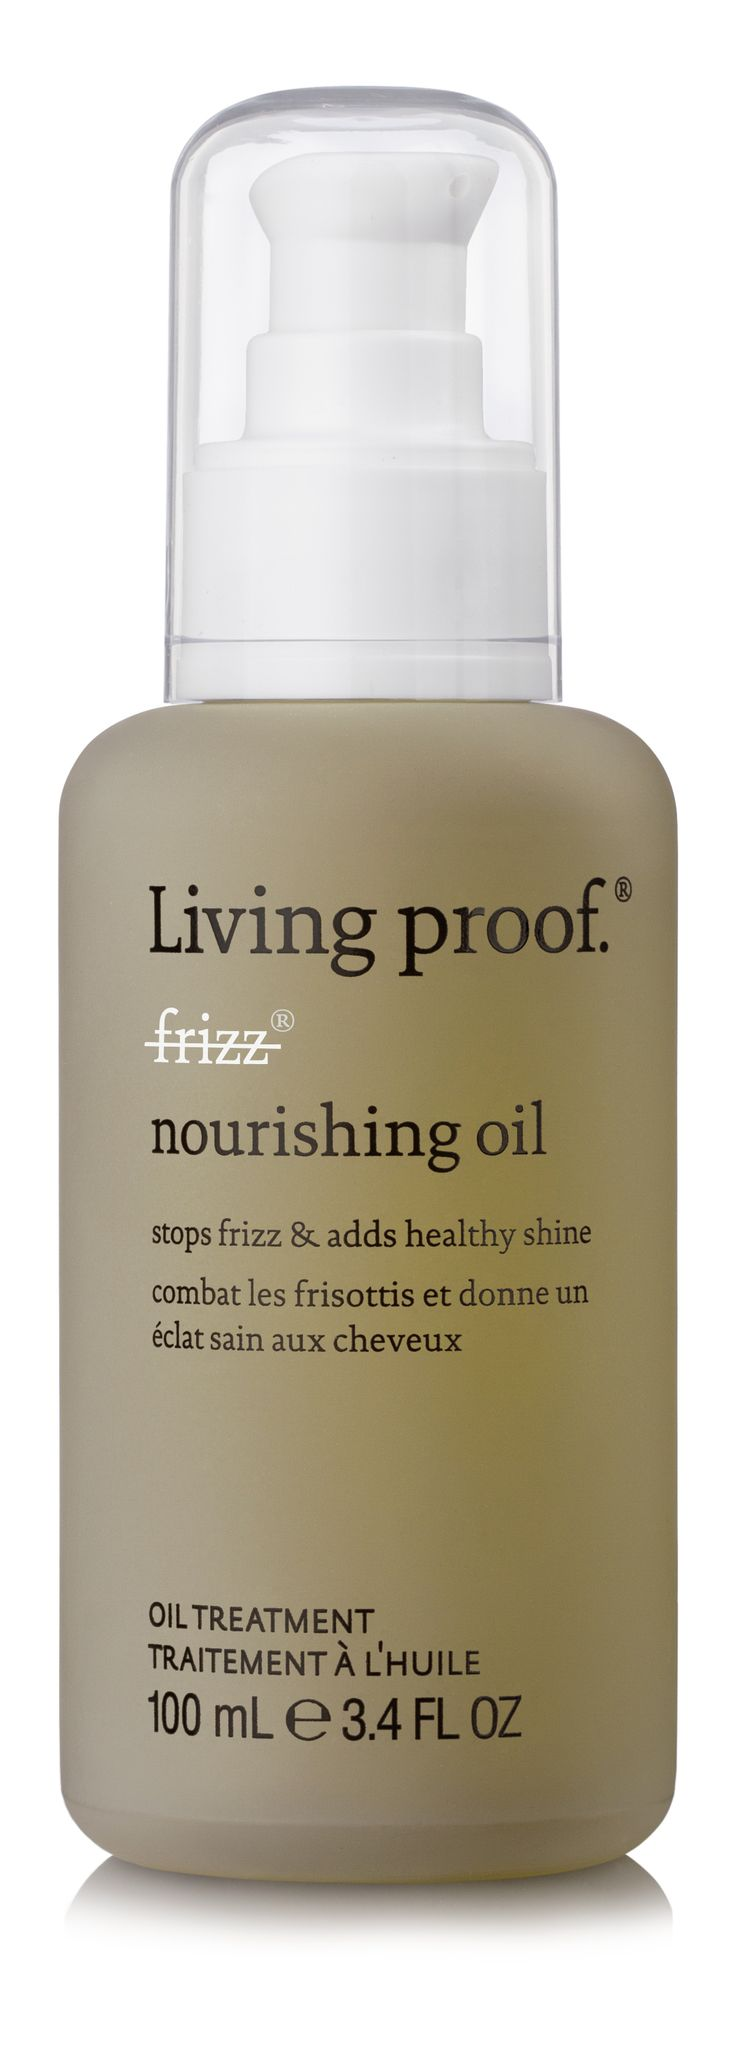 Living Proof's No Frizz Nourishing Oil provides the nourishment and manageability your coarse hair craves.